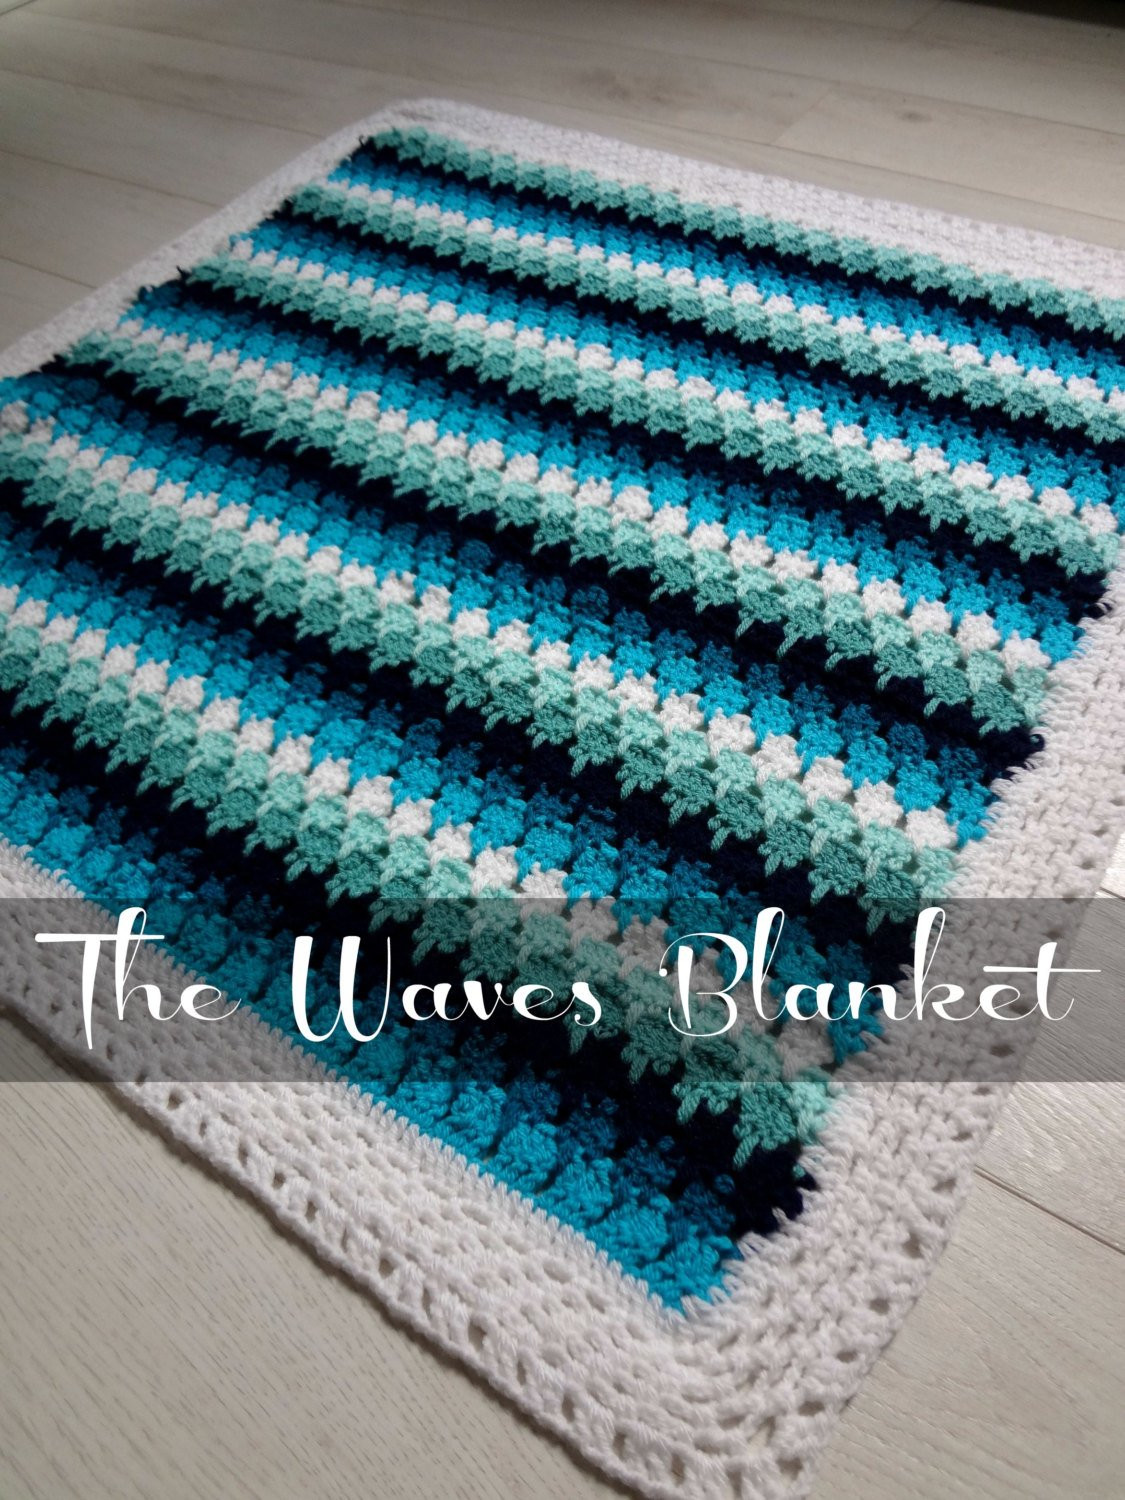 Best Of Crochet Pattern Baby Blanket Waves and Pebbles Crochet Wave Crochet Pattern Of Unique 40 Models Wave Crochet Pattern